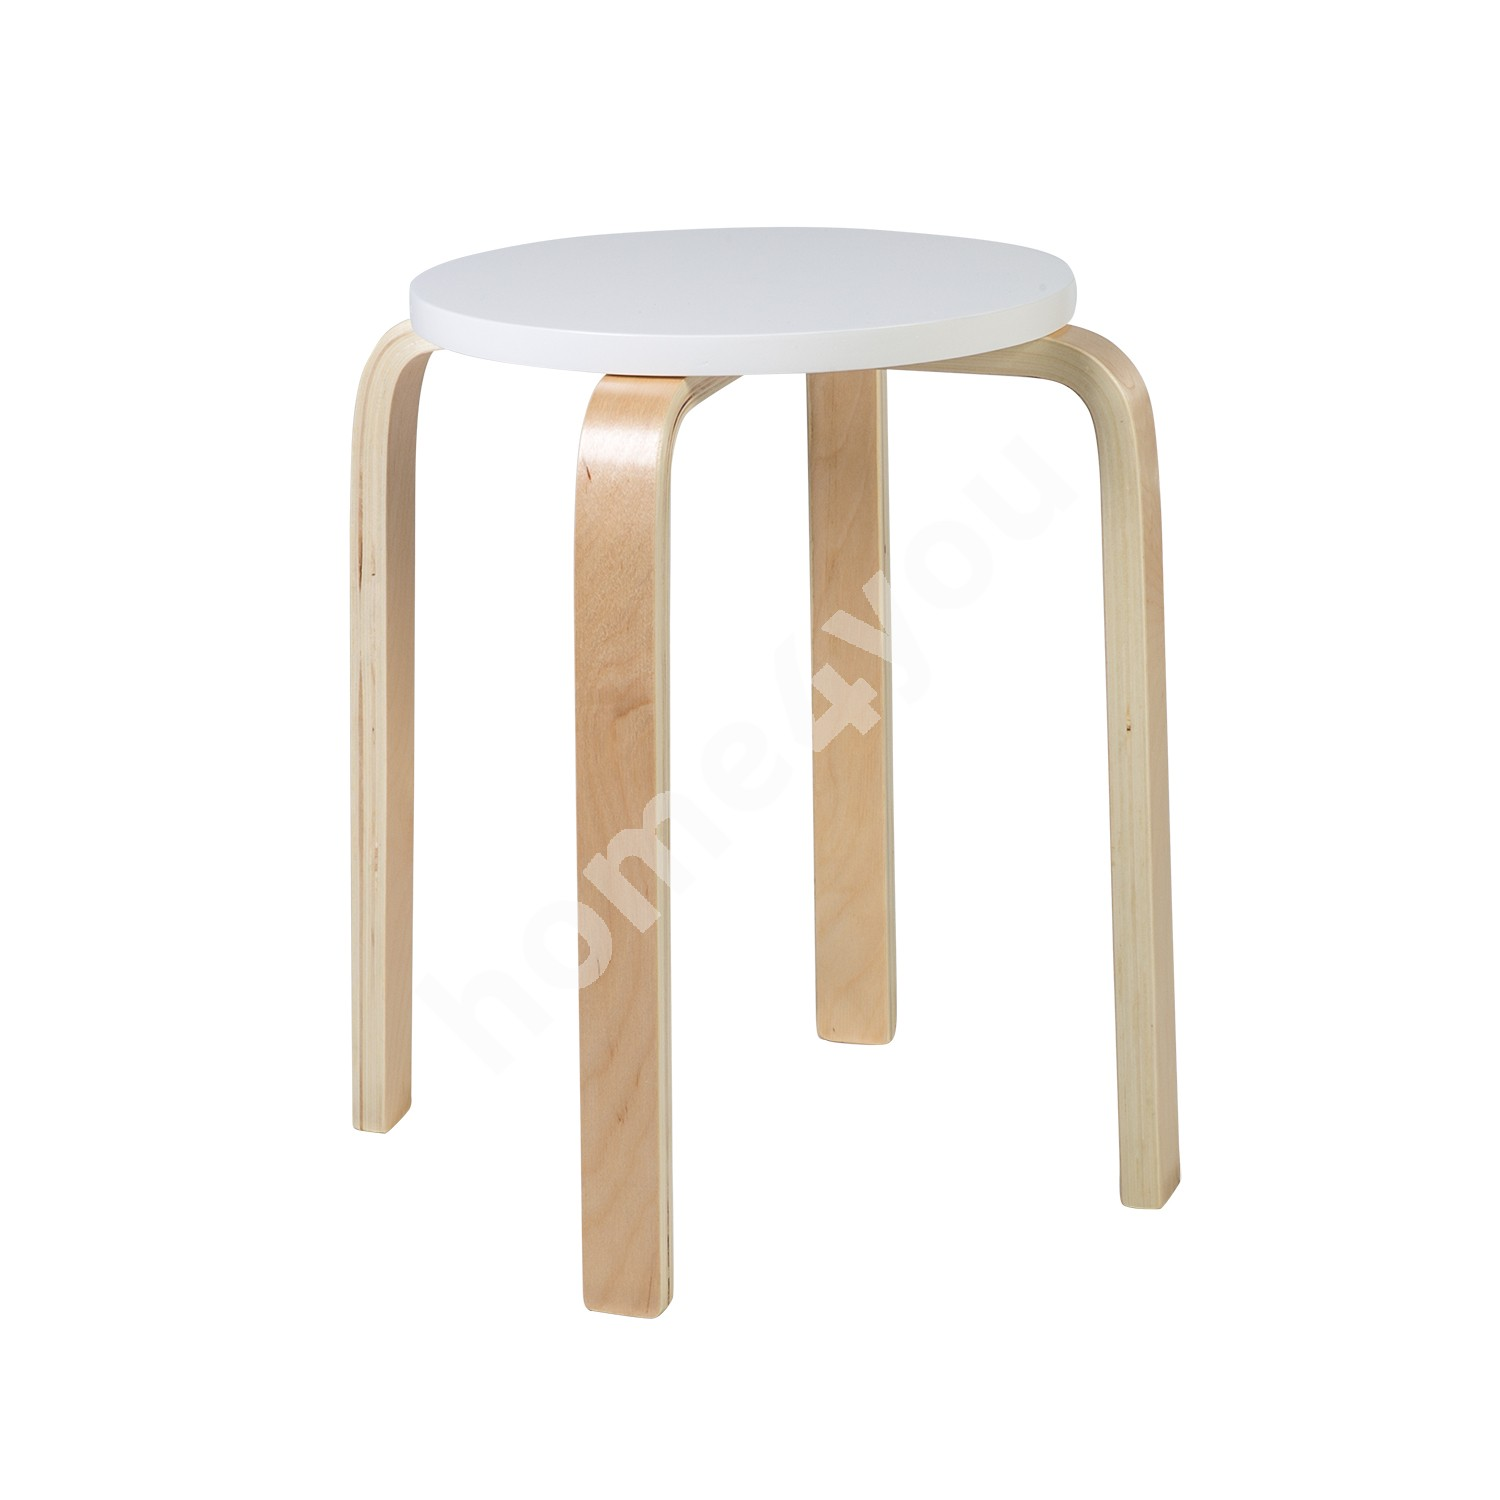 Stool SIXTY-1  D41xH45cm, material: glulam with birch veneer, color: white - natural